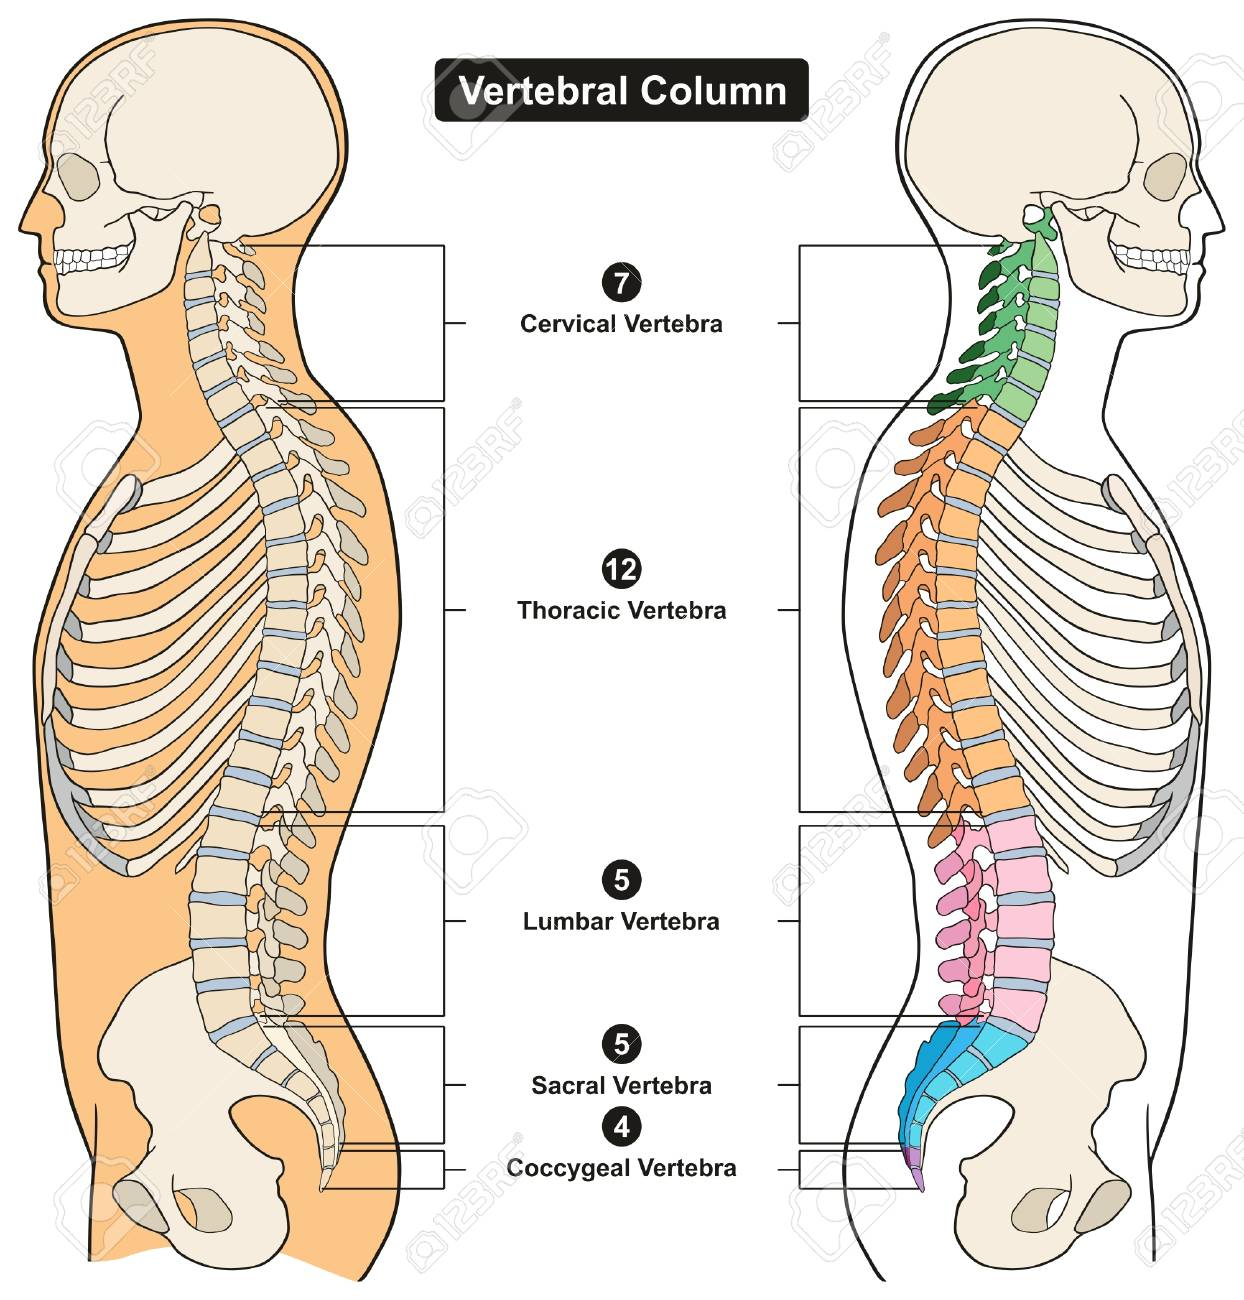 Vertebral Column Of Human Body Anatomy Infograpic Diagram Including